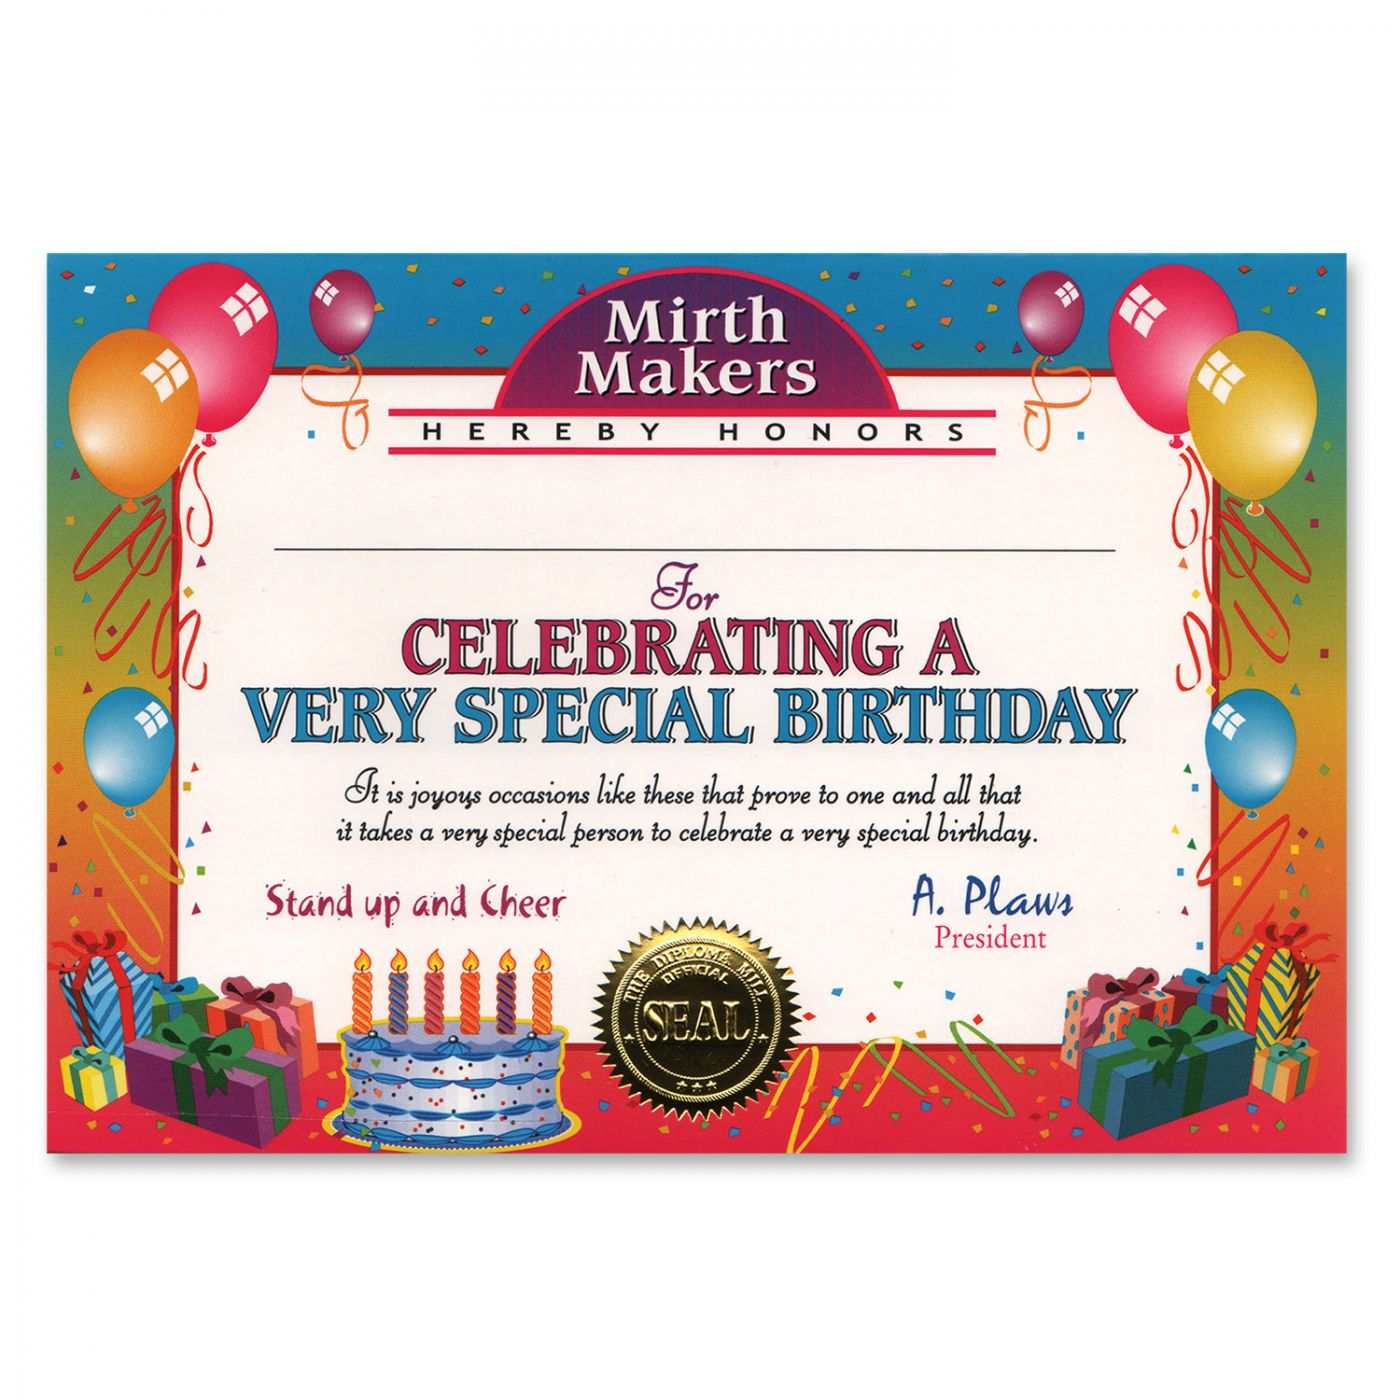 Very Special Birthday Certificate (6) image